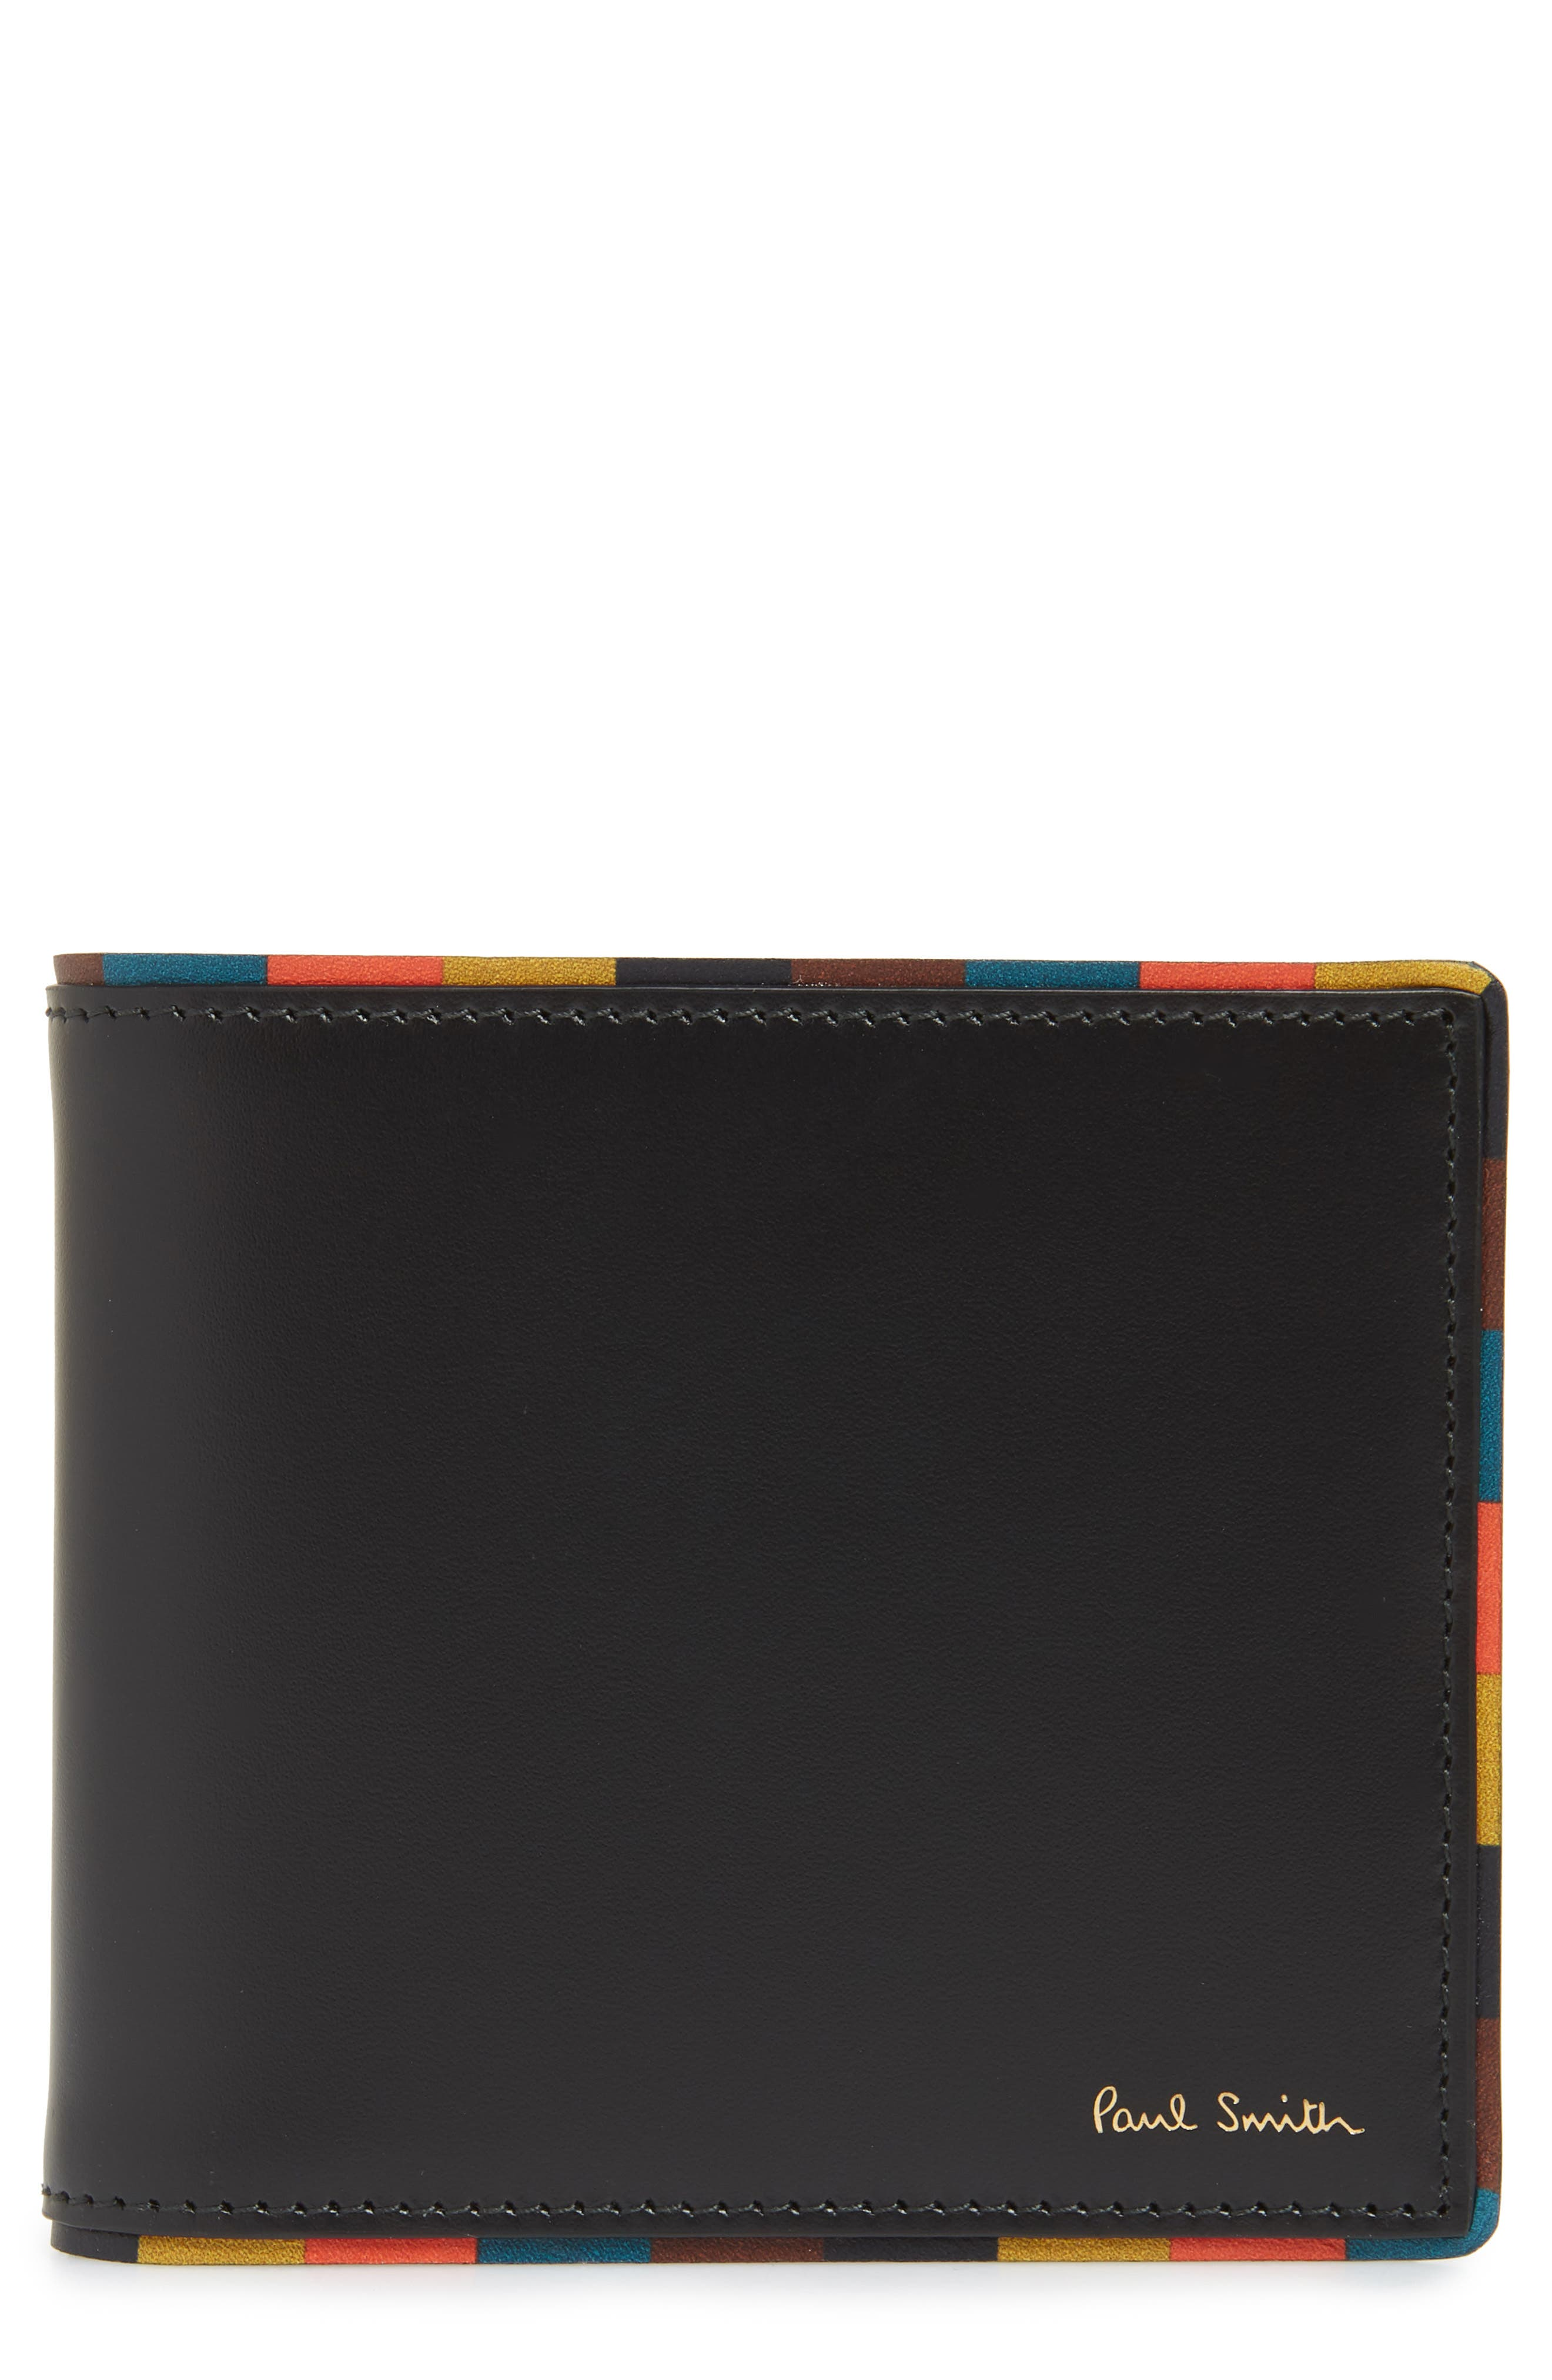 PAUL SMITH Leather Billfold Wallet, Main, color, 001